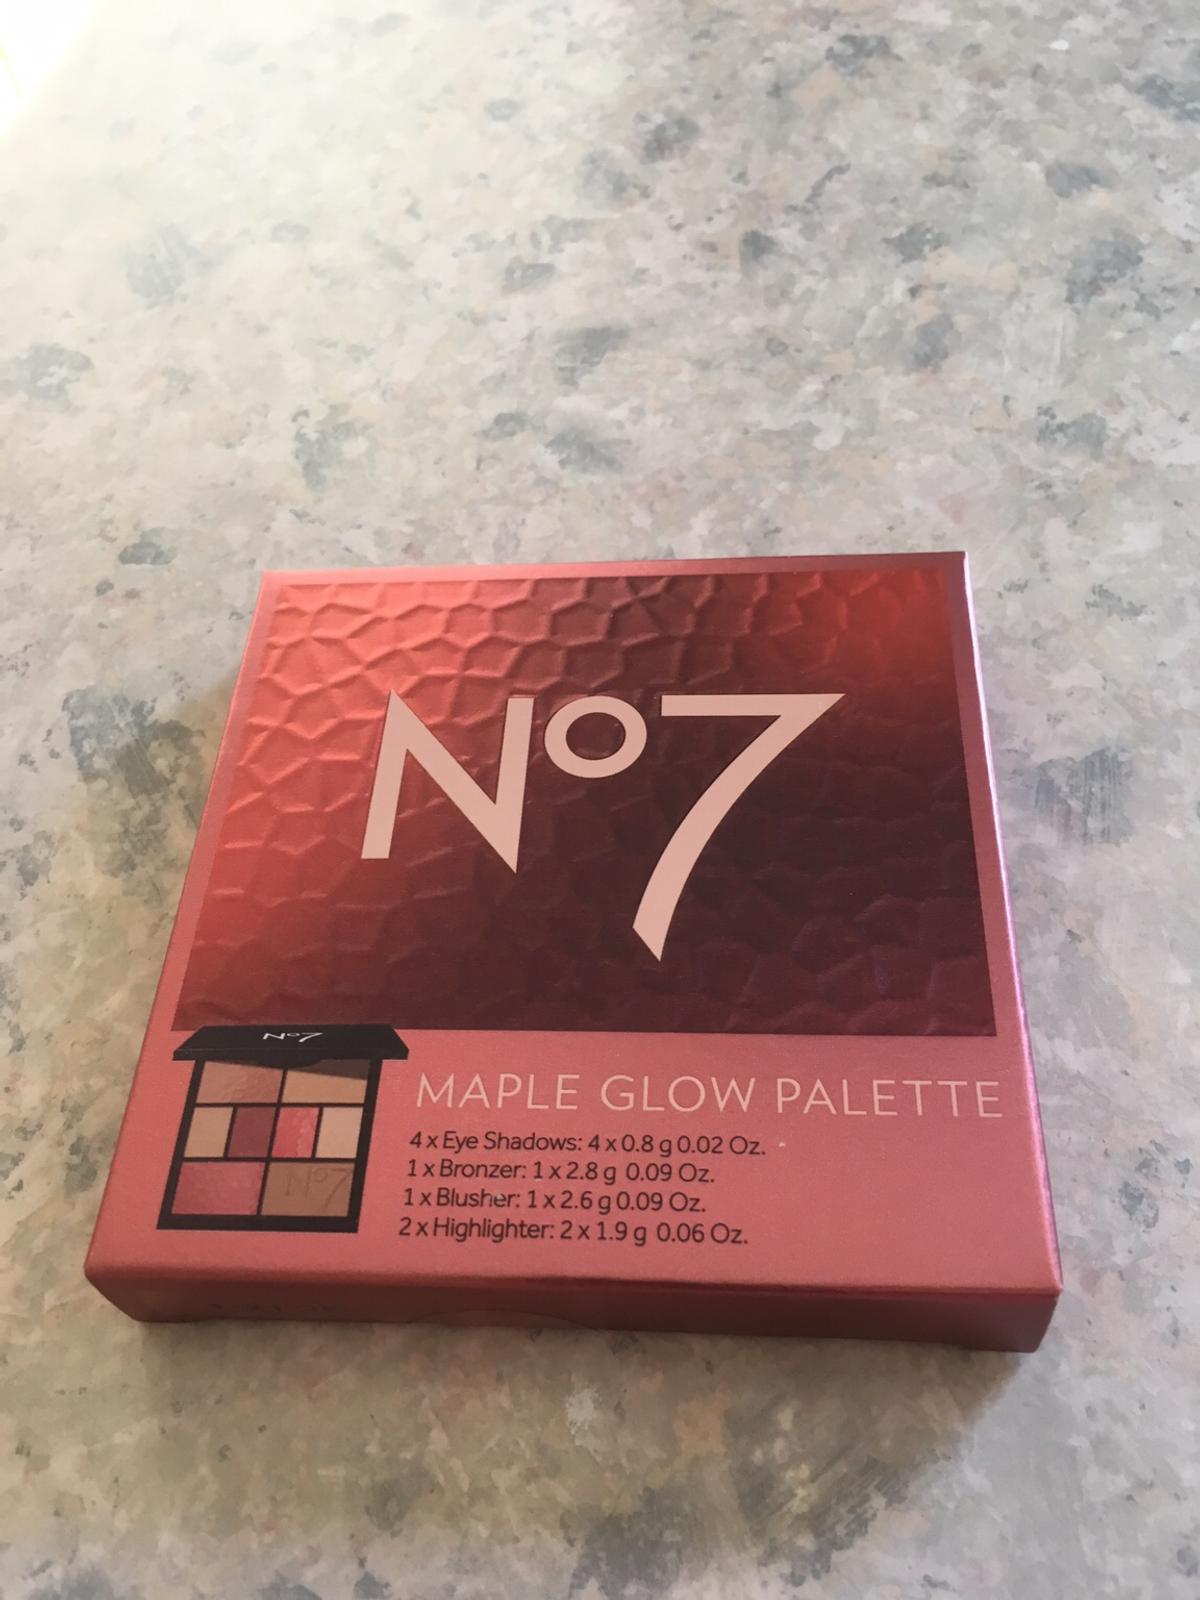 Brand new makeup palette consisting of 4 x eyeshadows, 1 x bronzer, 1 x blusher, 2 x highlighter. RRP £25.00. Collection only IP5 area.